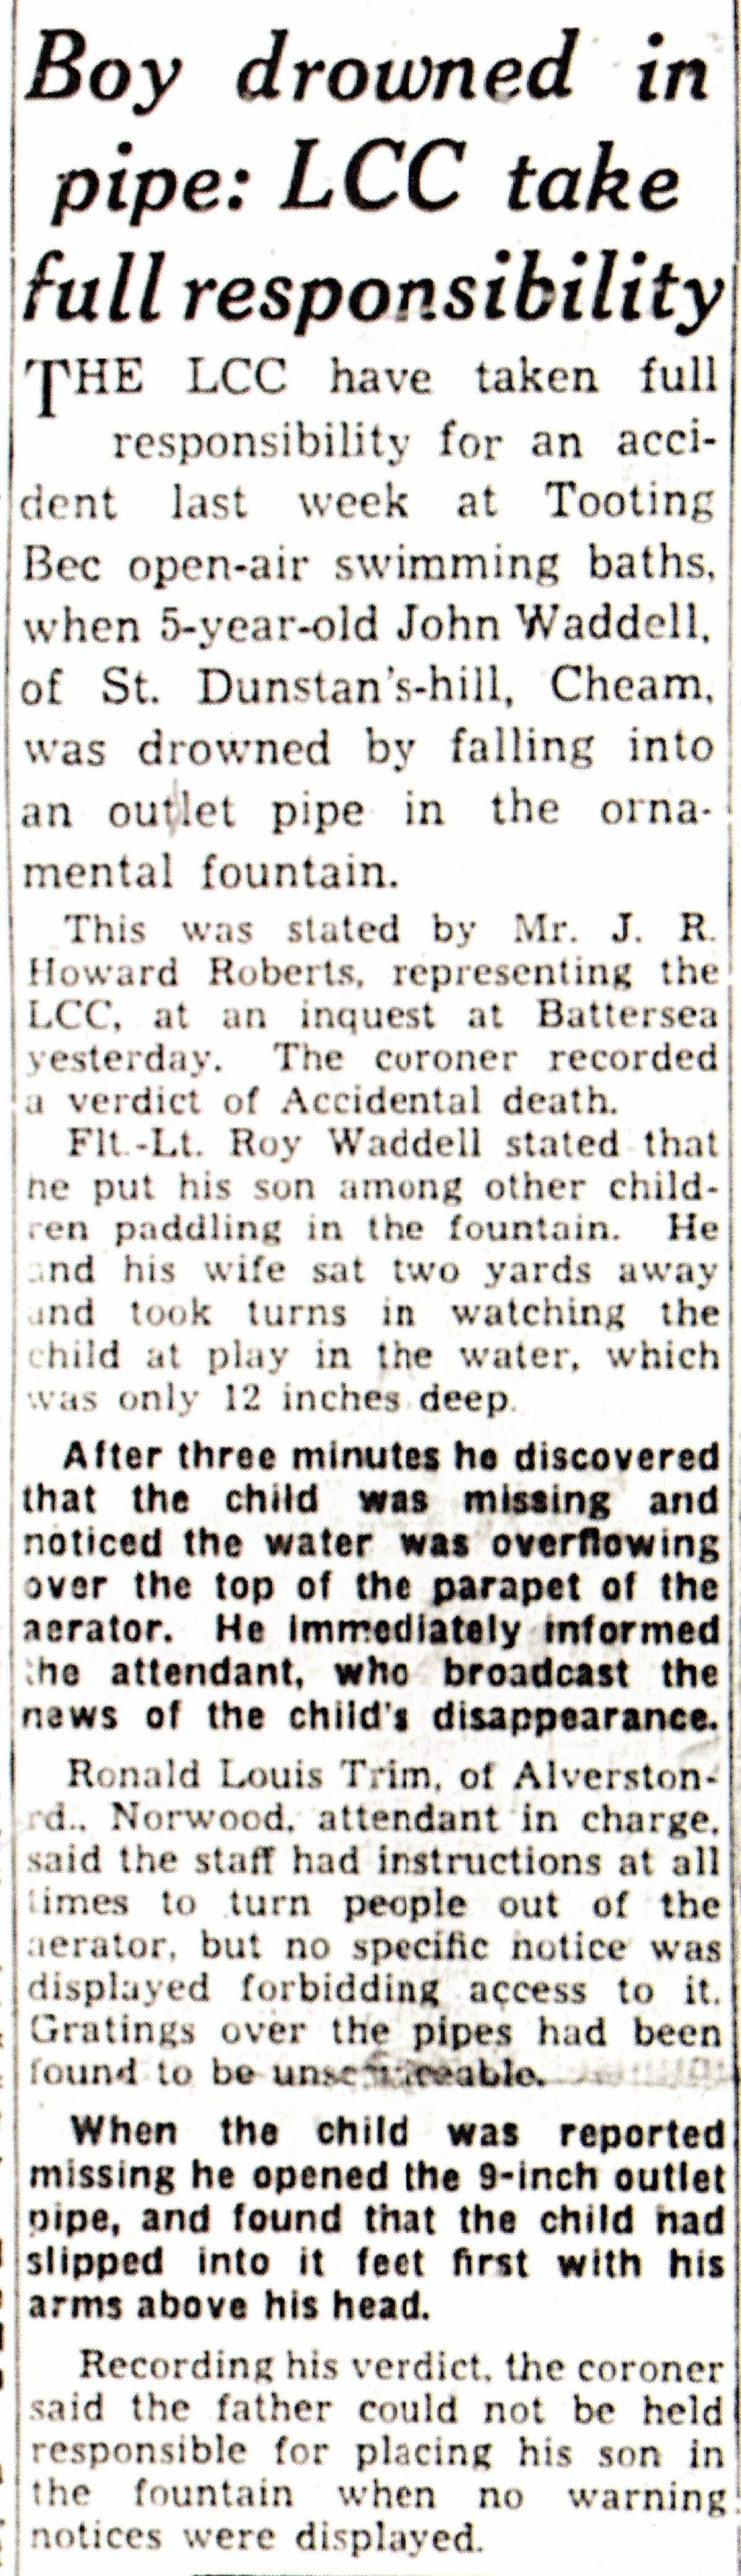 Death of 5-year old John Waddell